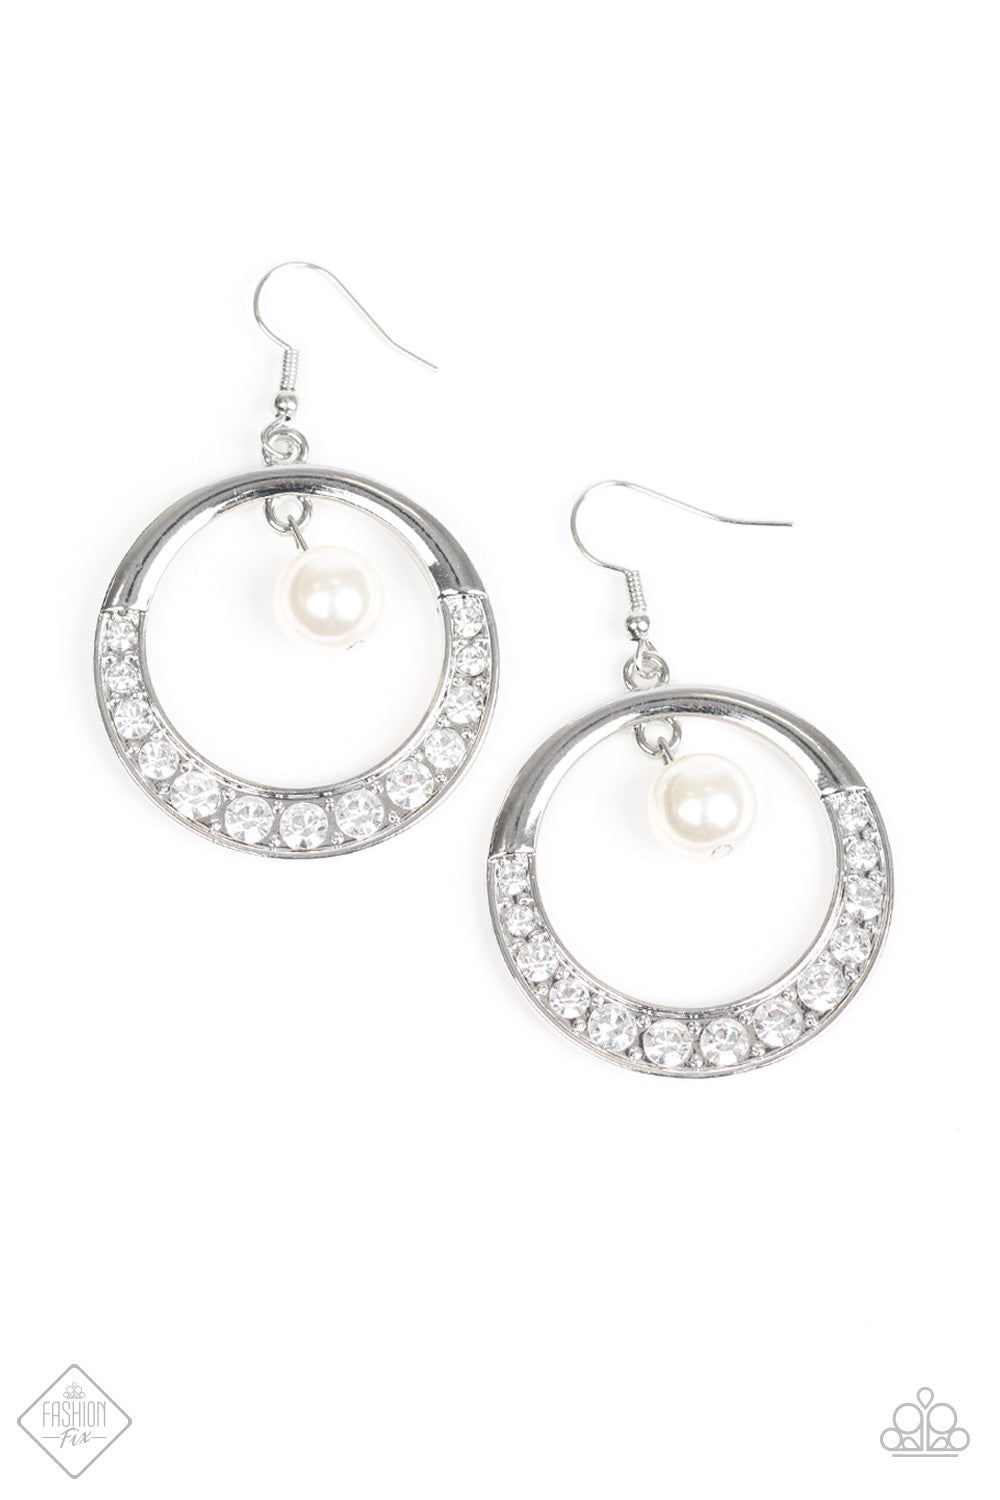 The Icon-ista Earrings